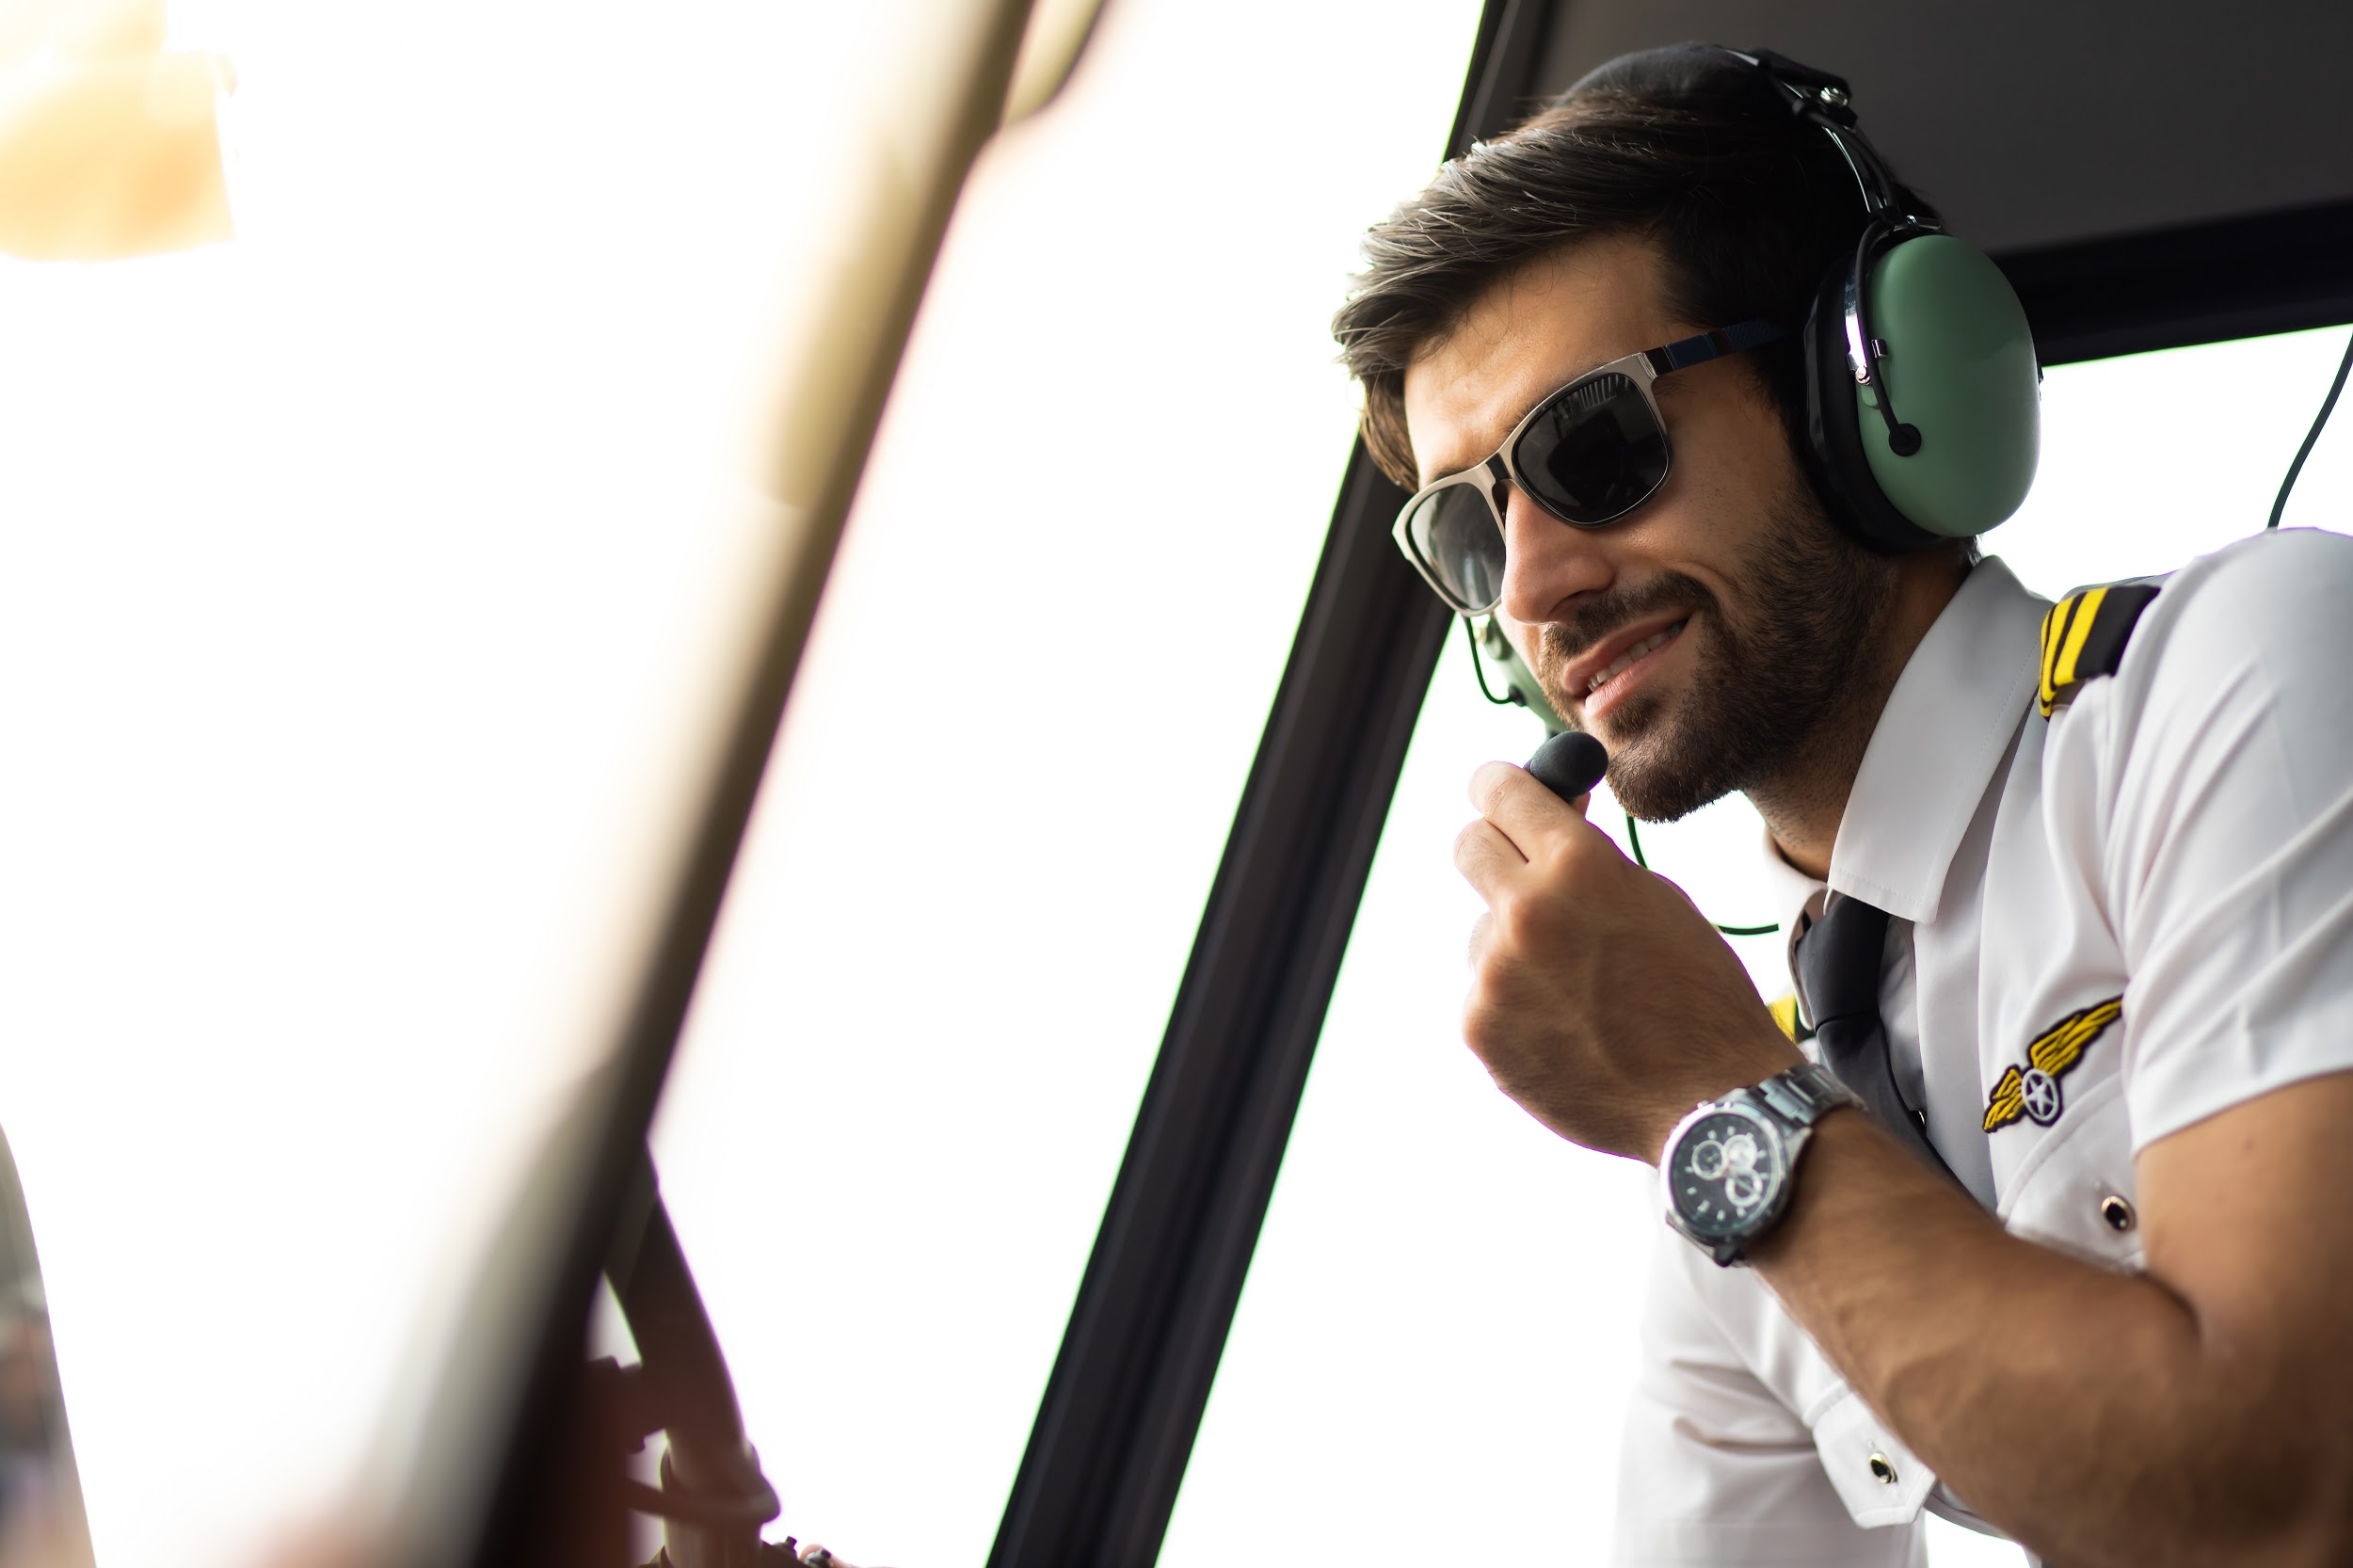 pilot with headset starting the controls in cockpit helicopter